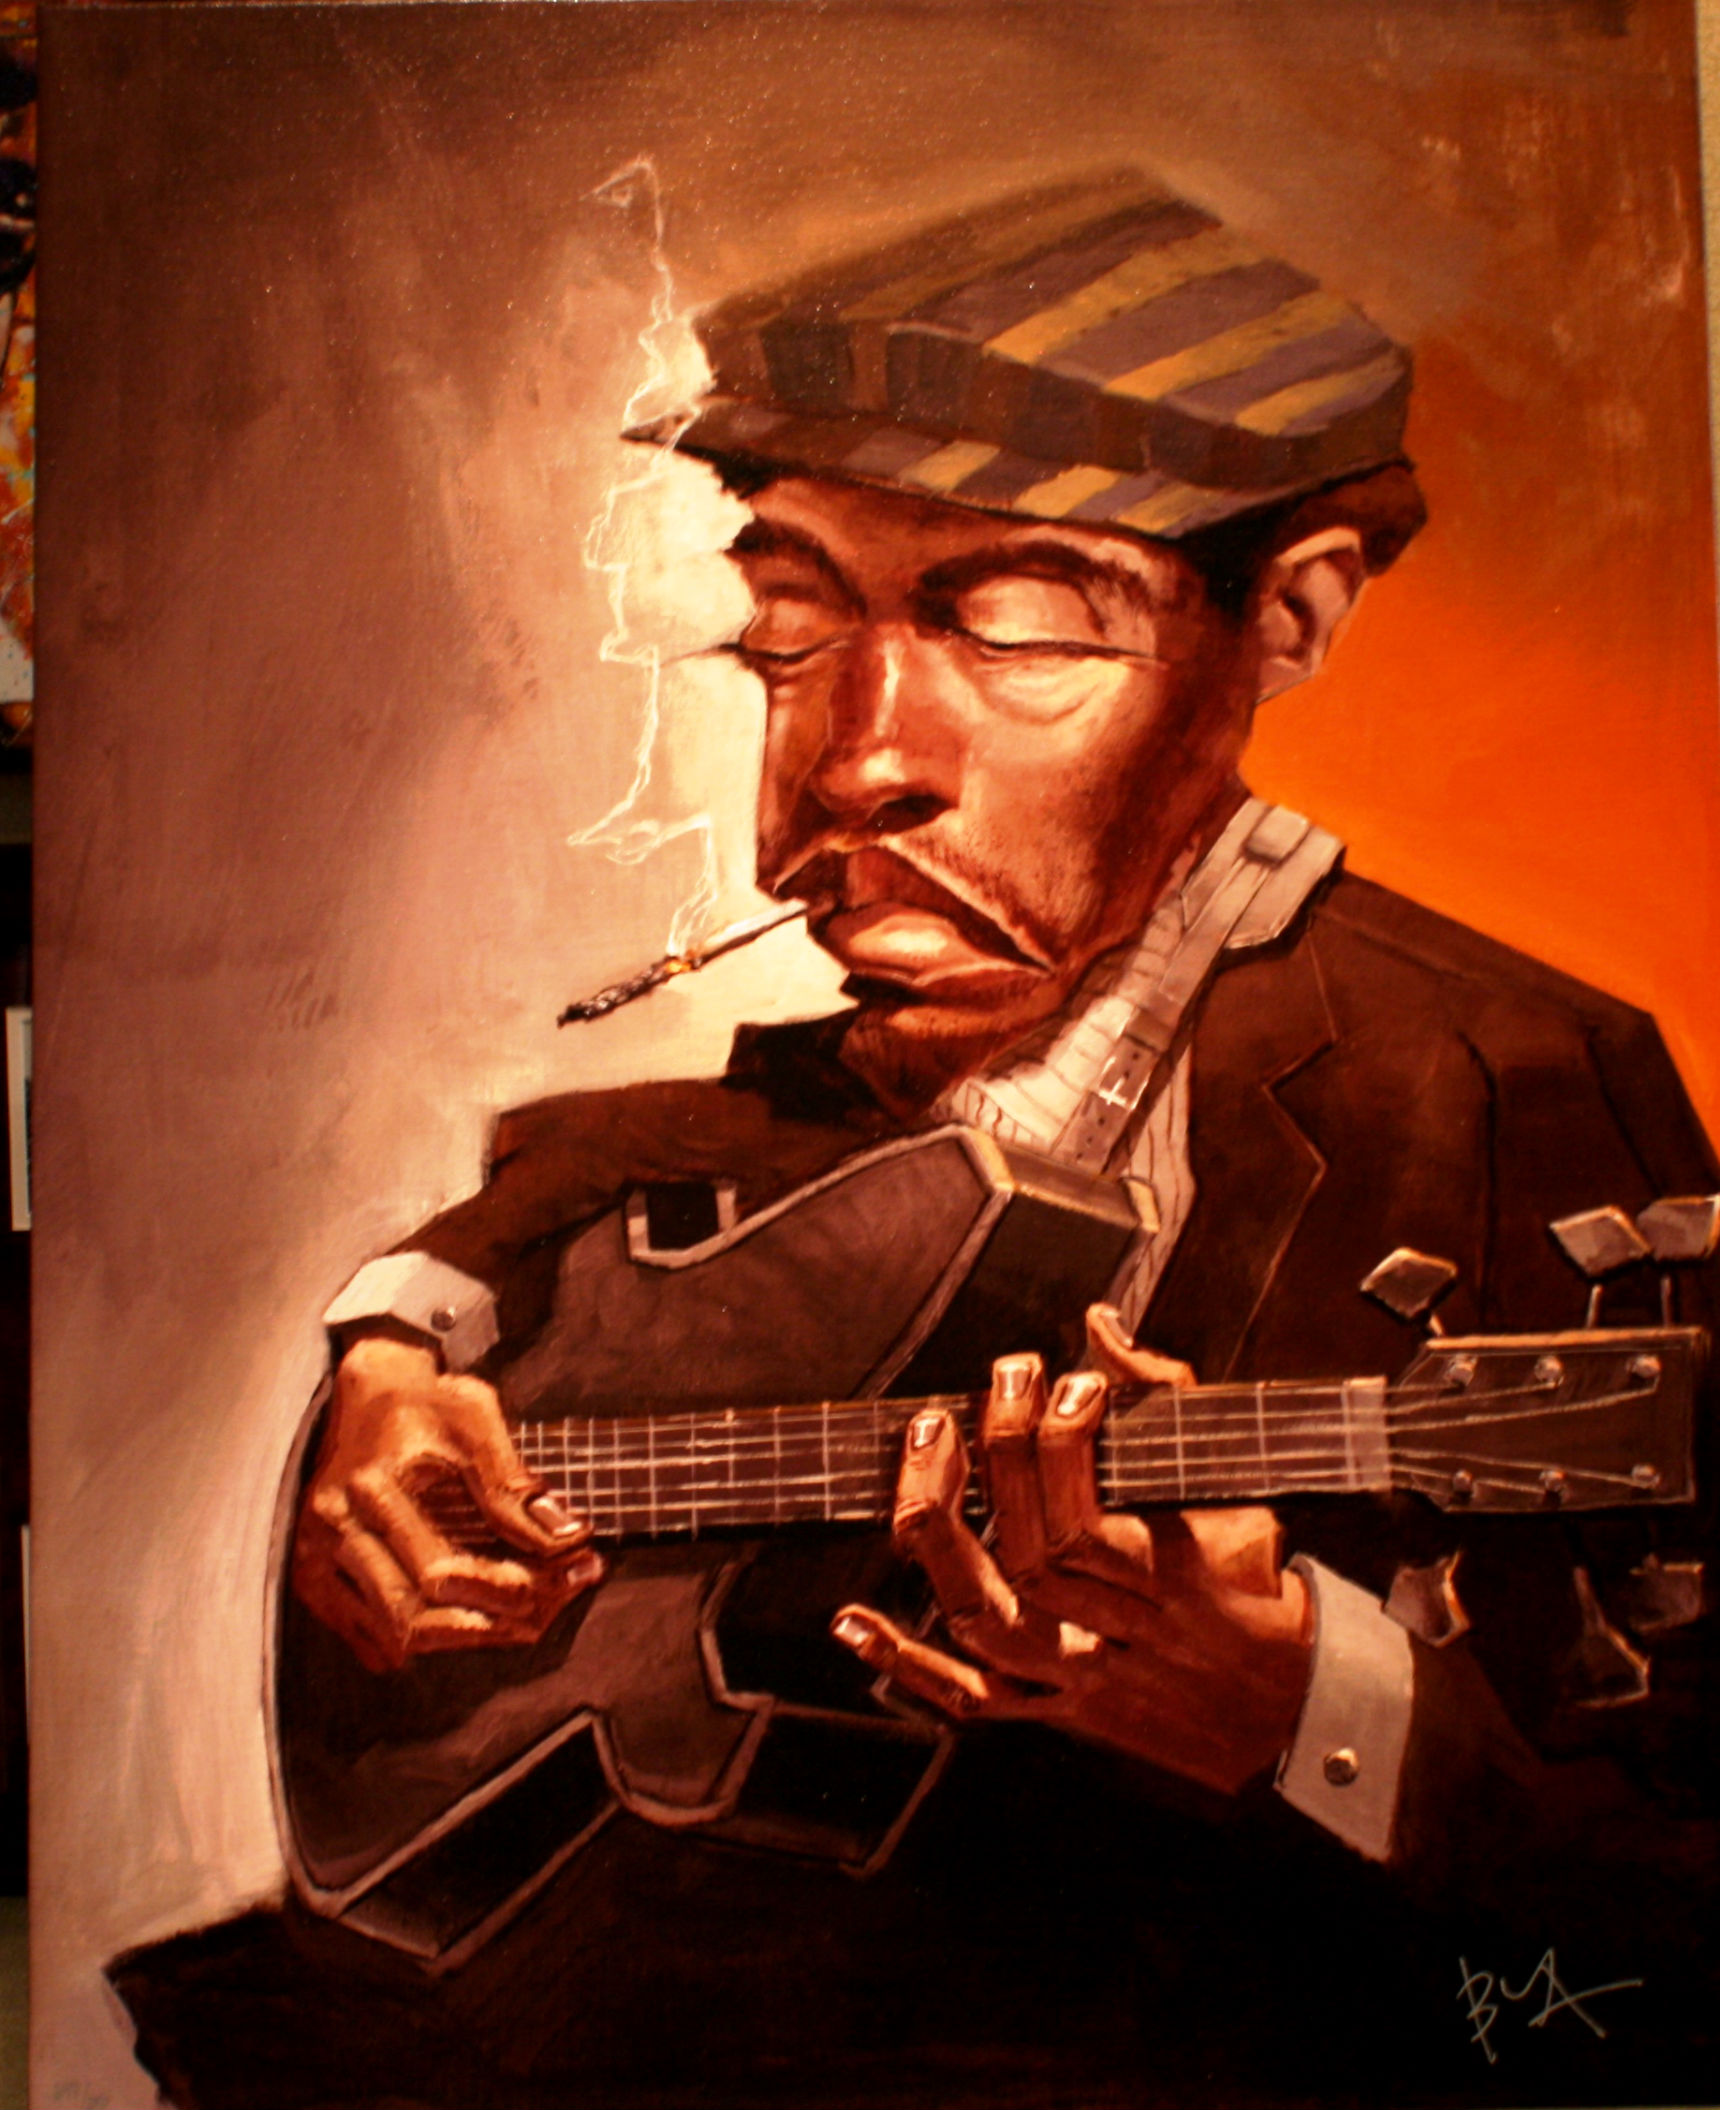 ART9: BLUES MAN by JUSTIN BUA!